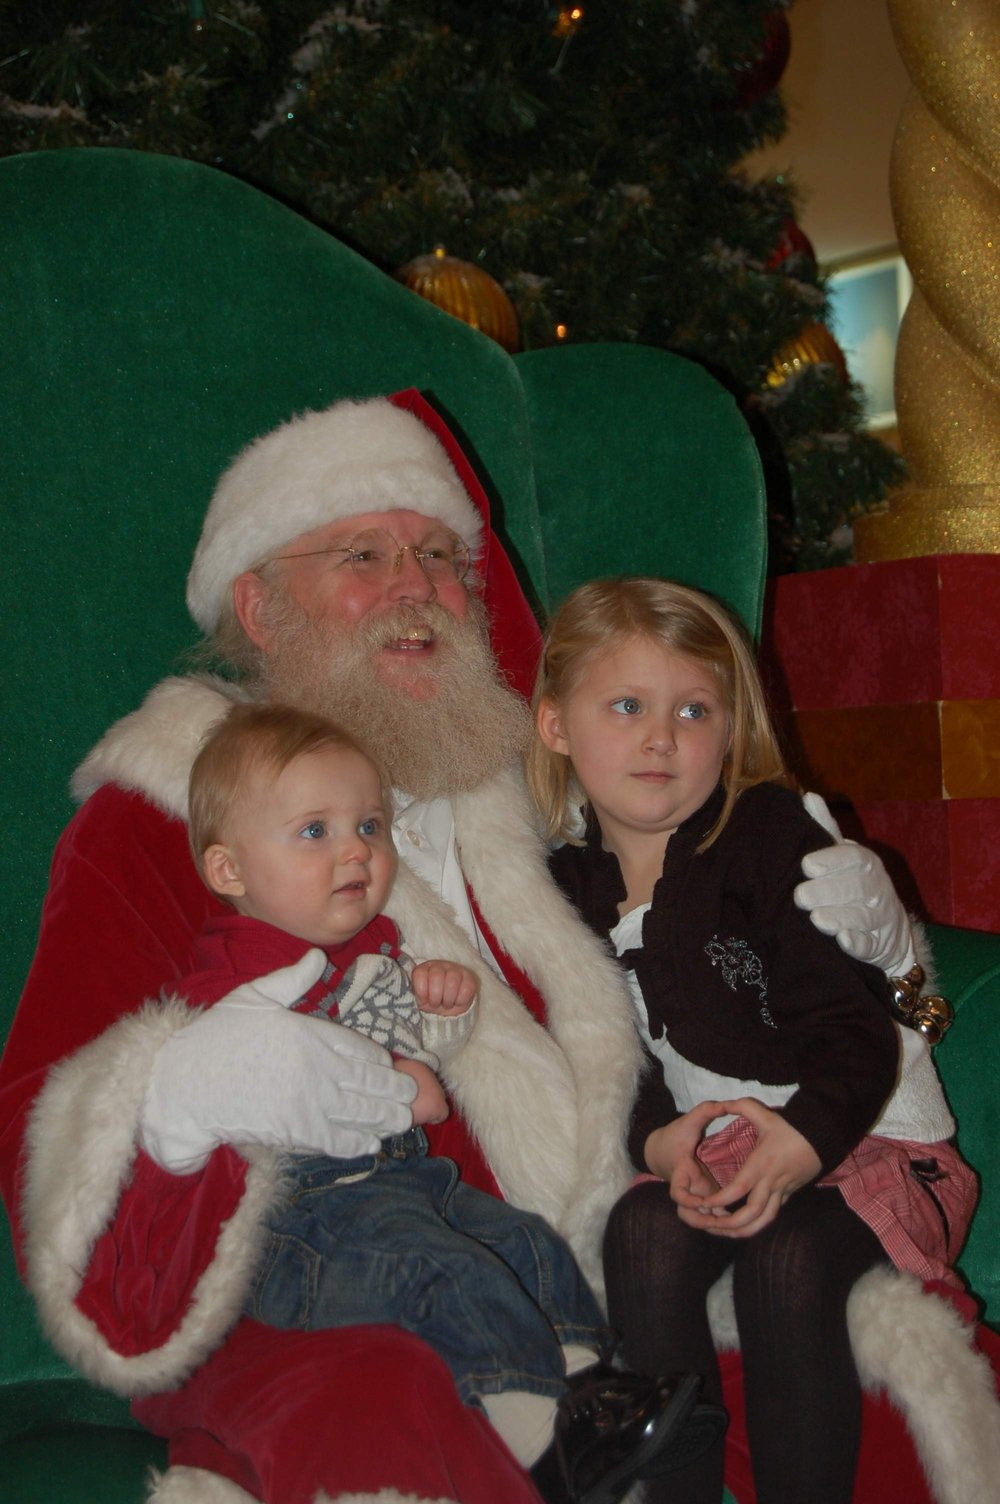 Visiting Santa. The Bass Pro Shop in Independence has one of the best Santa's that I've ever seen. We've been going to see him for many years...